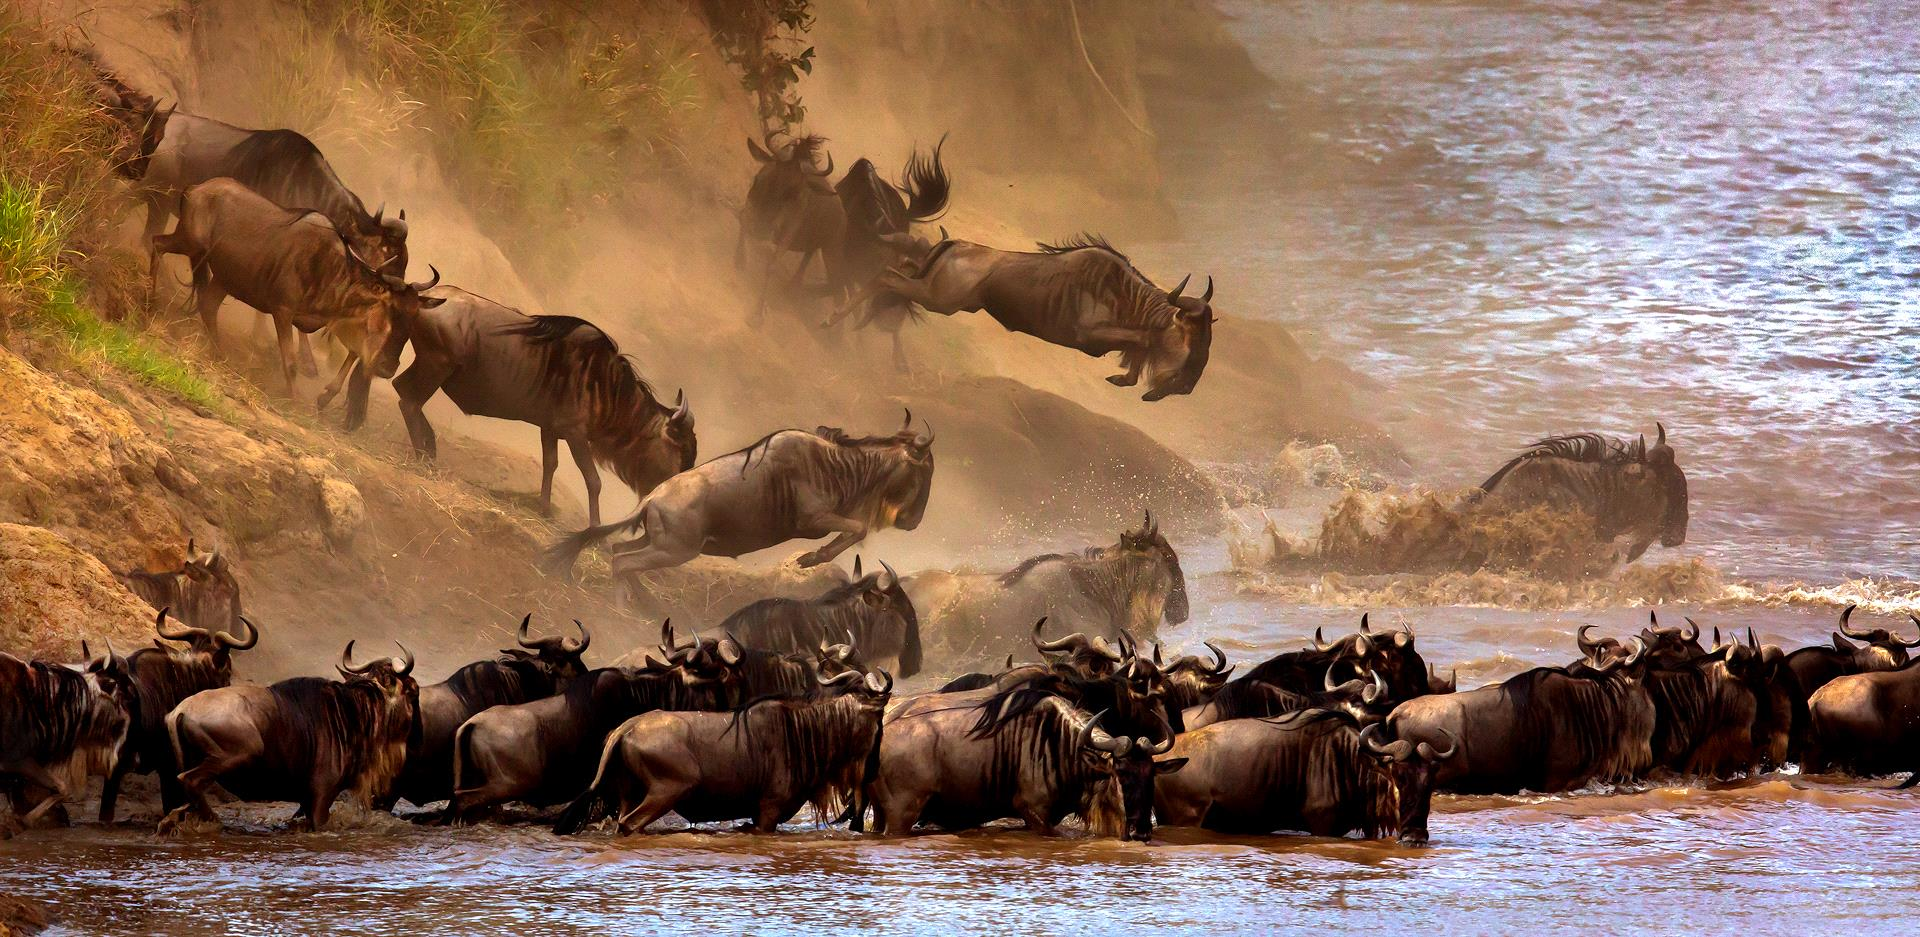 Certificate of Commendation - Sergey Agapov (Russian Federation) - Great Migration Of Wildebeest 2